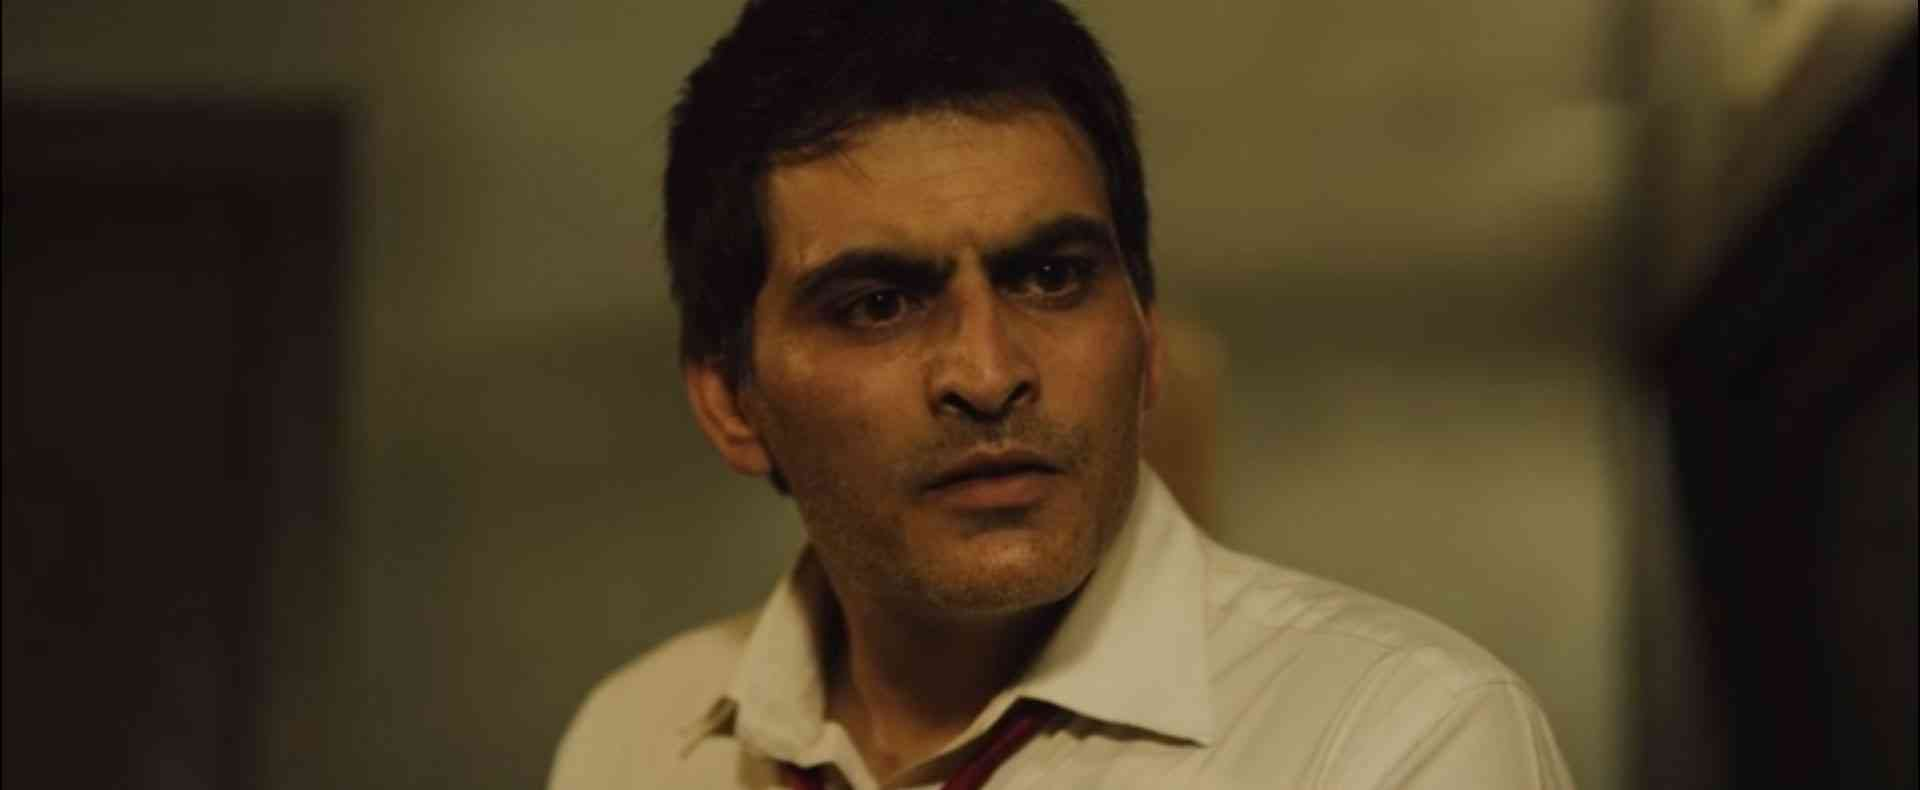 Manav Kaul in Ghoul. Courtesy Netflix.